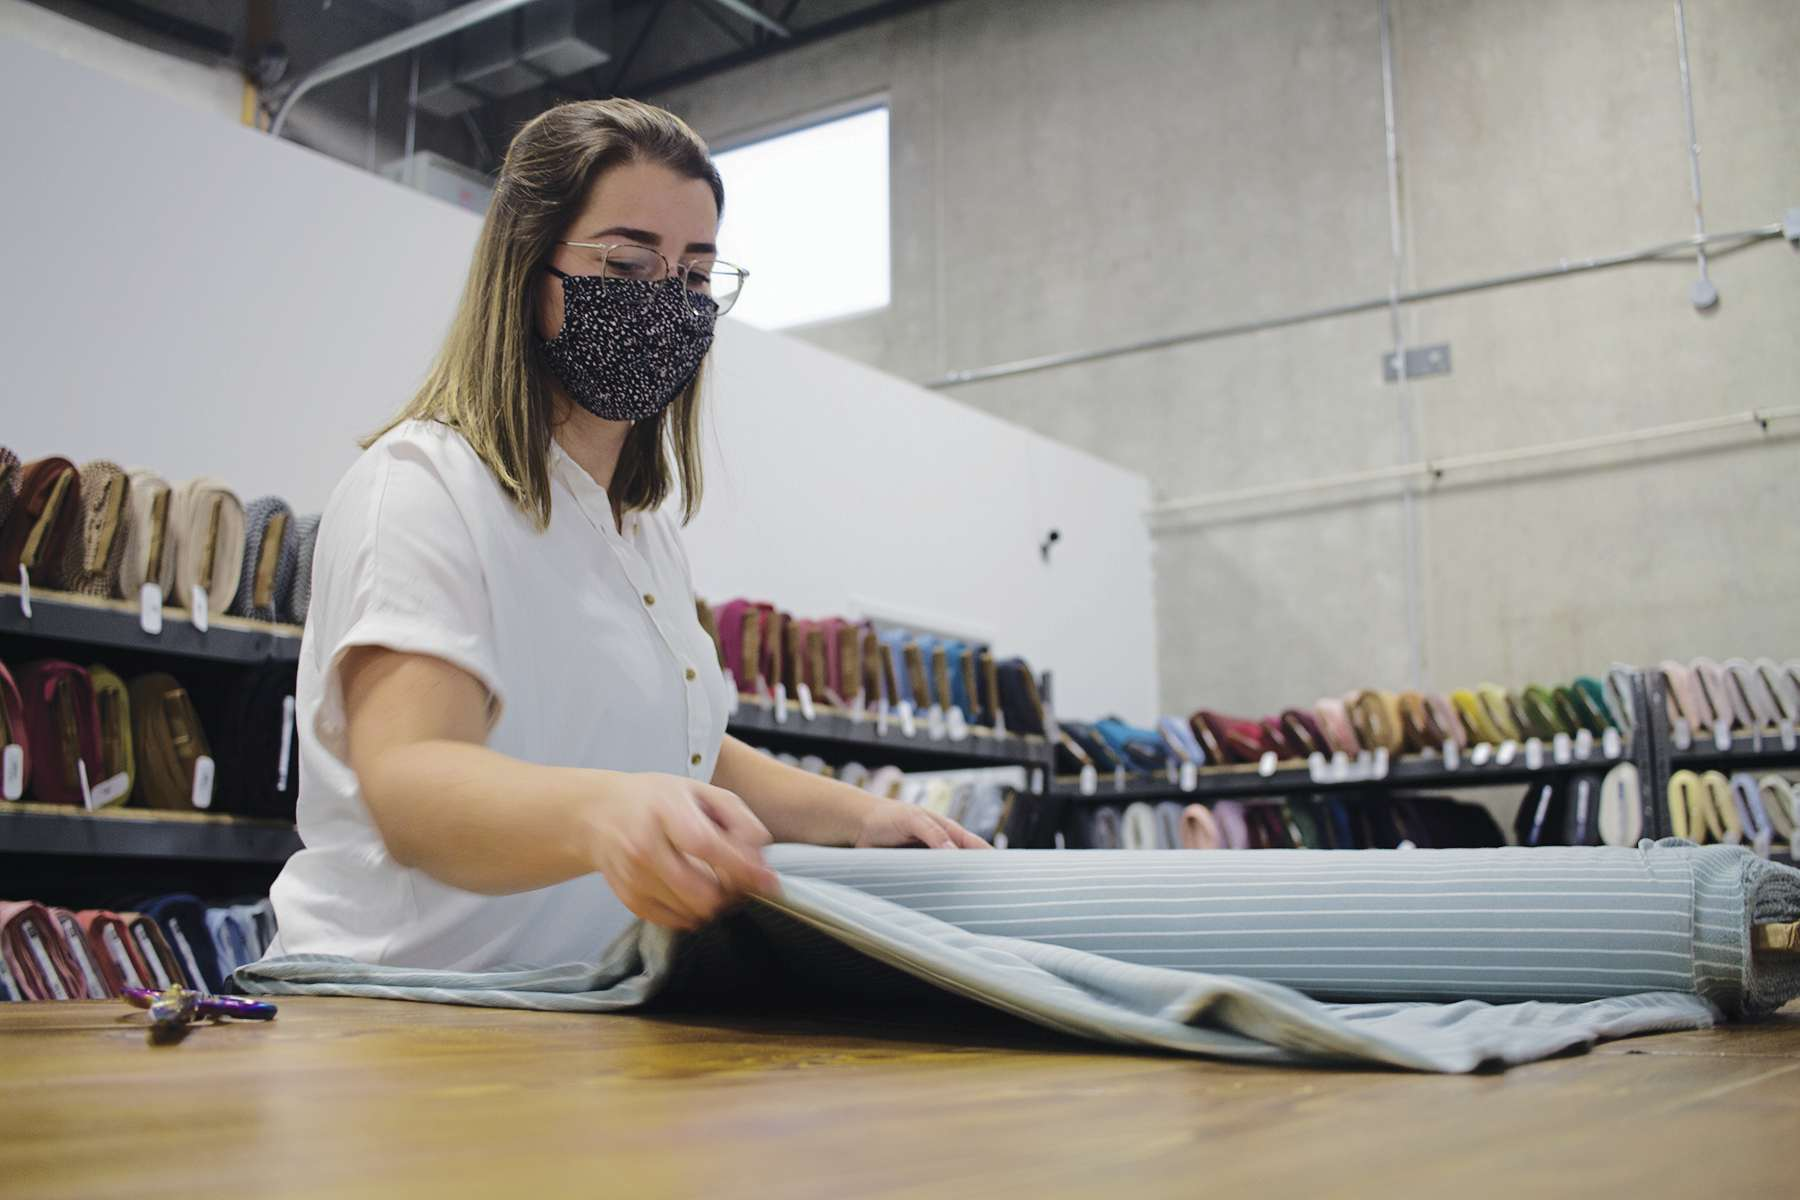 Brianne Davison, manager of The Fabric Snob, measures and cuts from a roll of fabric at the Manitoba business's new retail location in Oak Bluff.